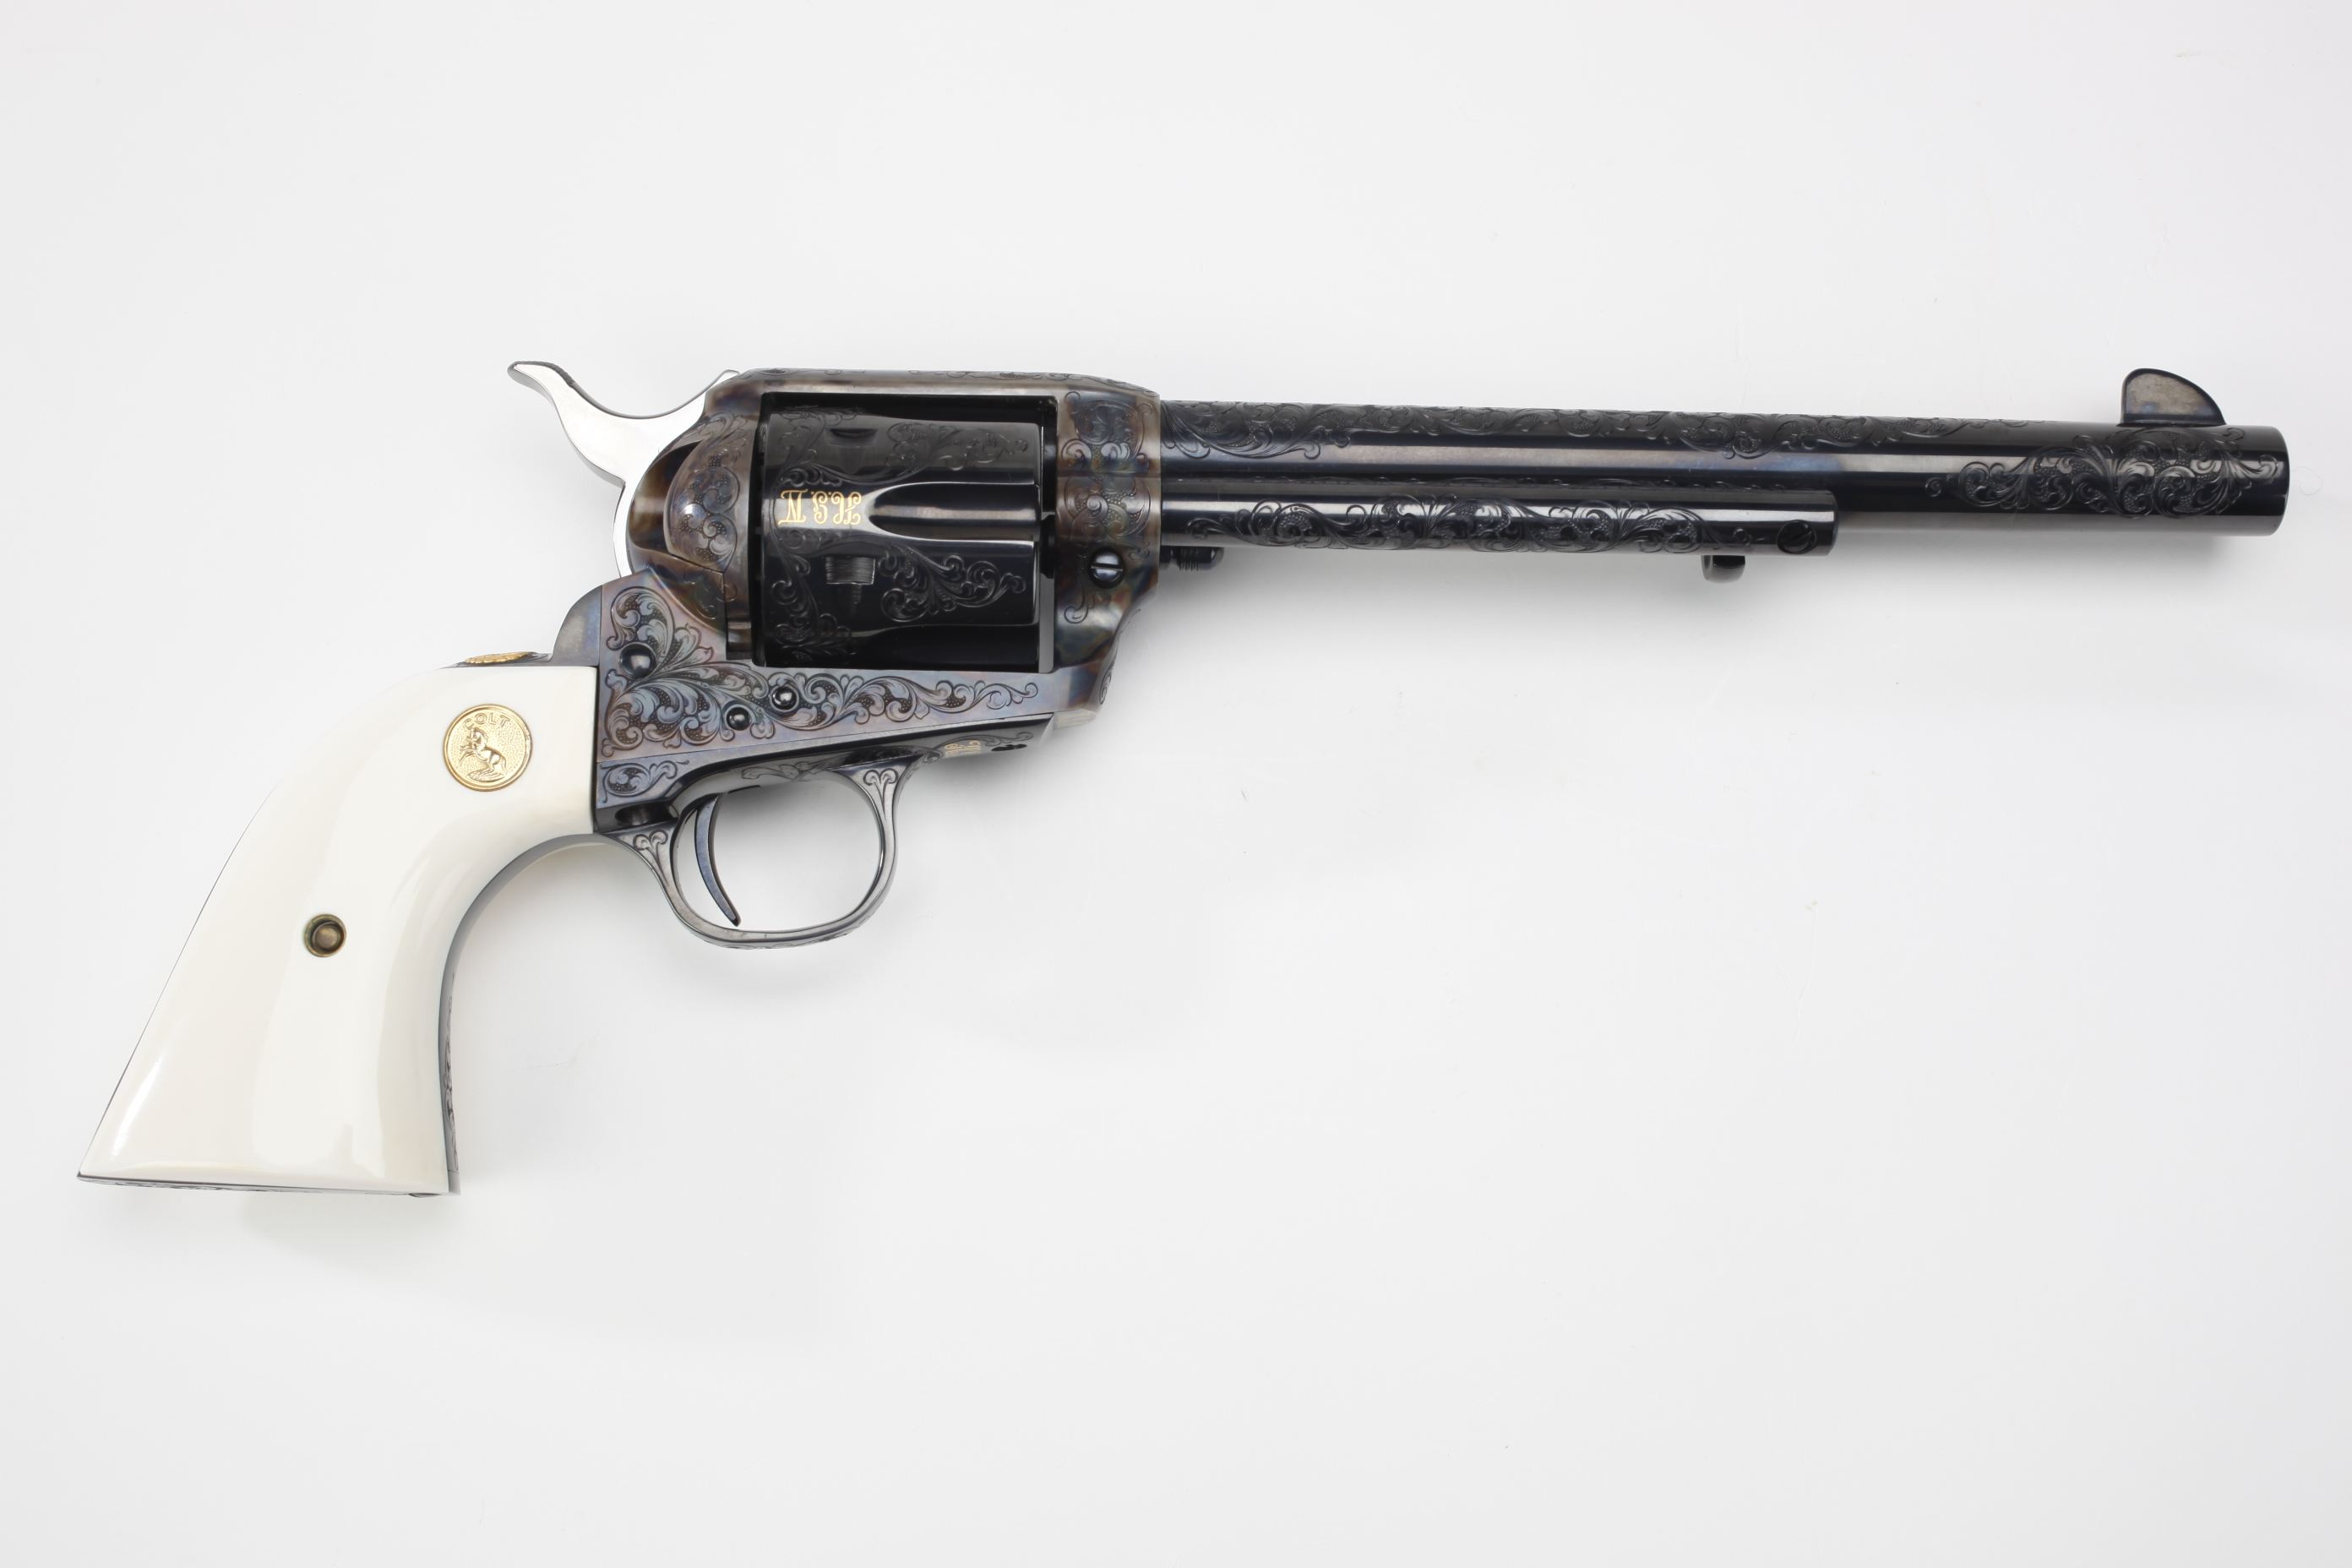 Colt Engraved Single Action Army Revolver w/ ivory grip panels